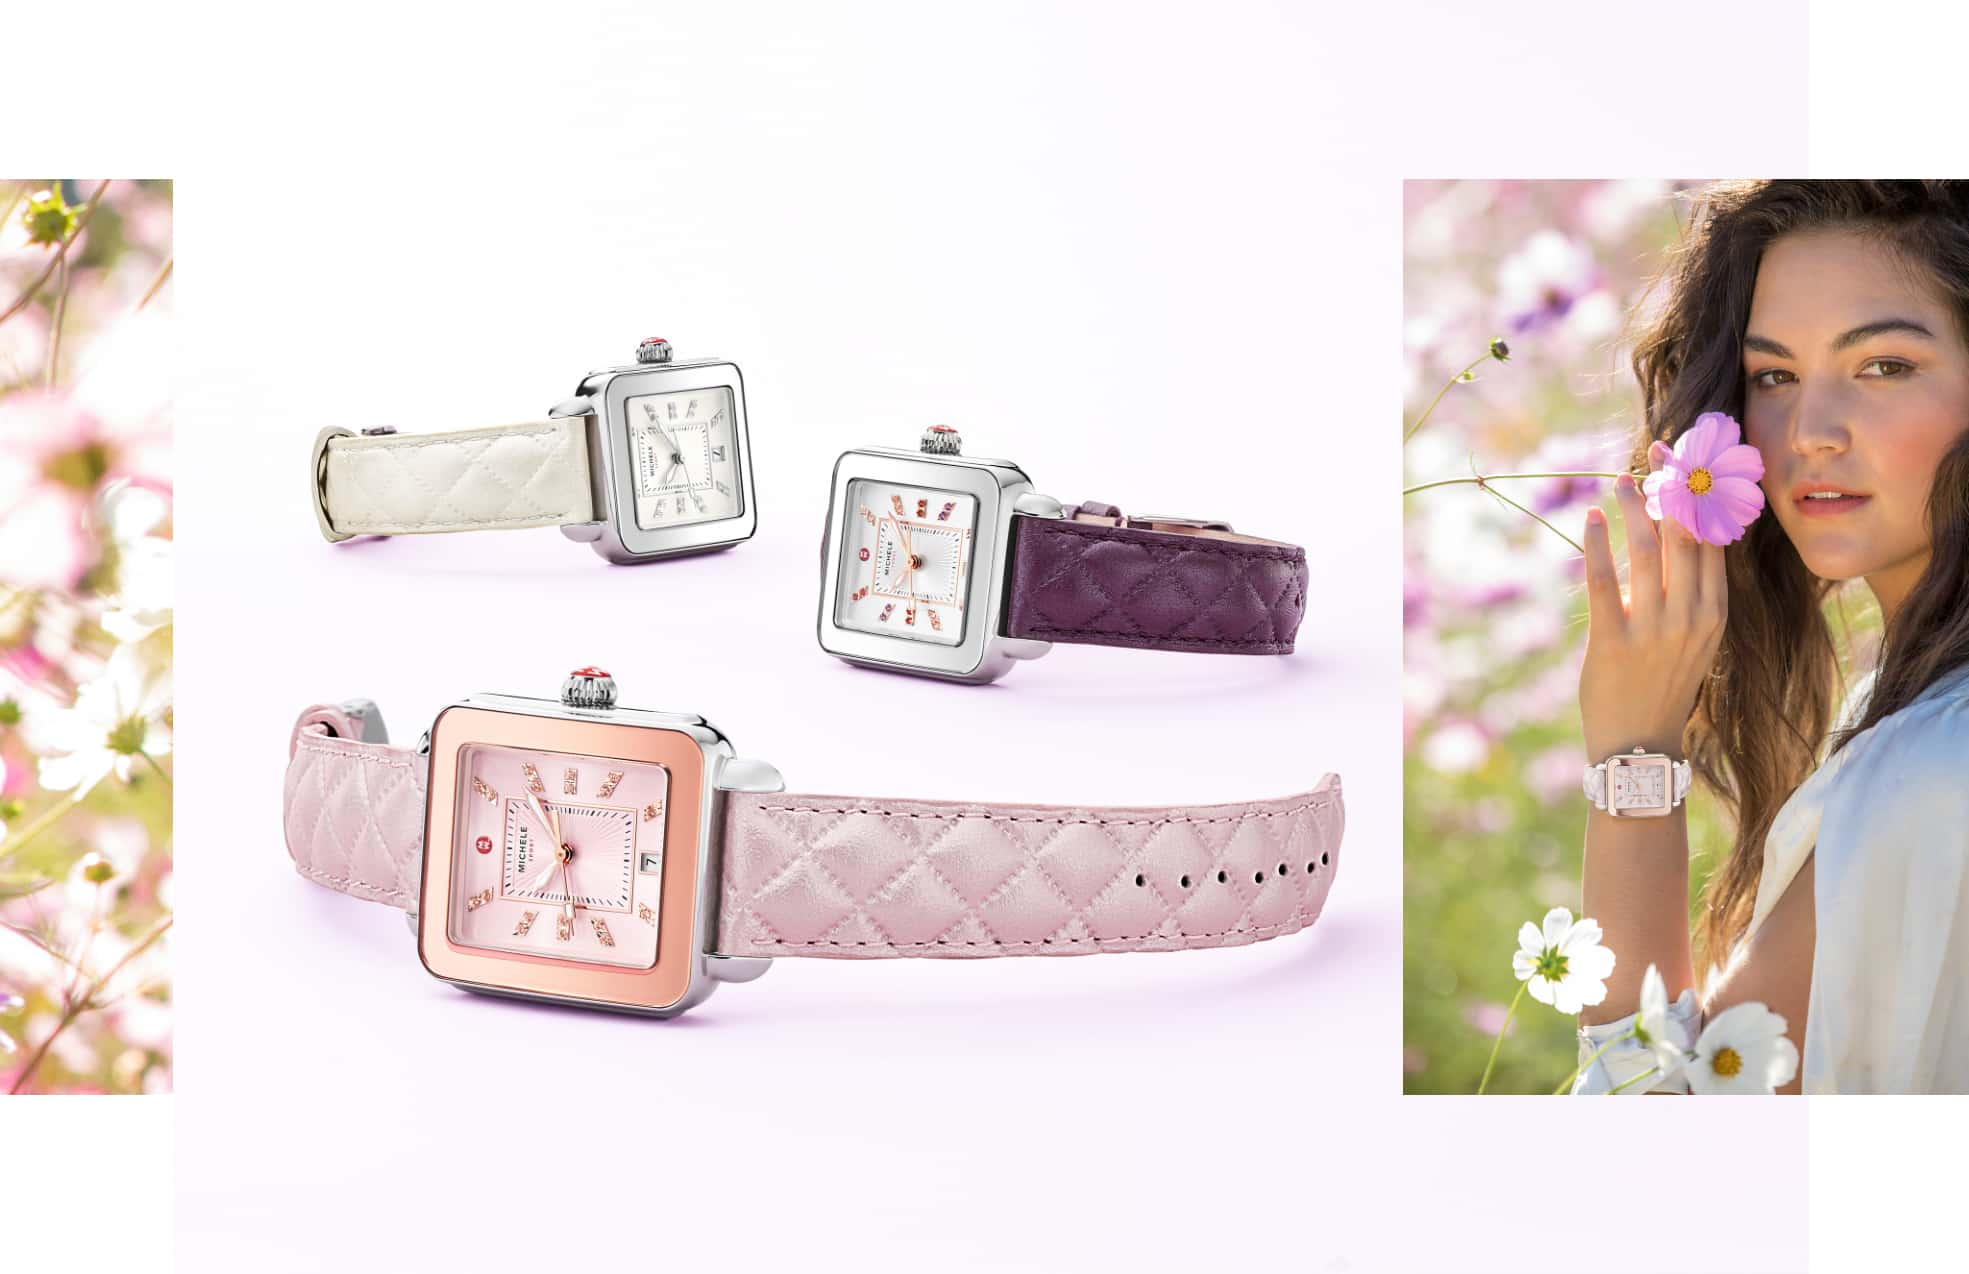 Three Deco Sport countryside watches featuring quilted leather straps in lilac, violet and pearl.